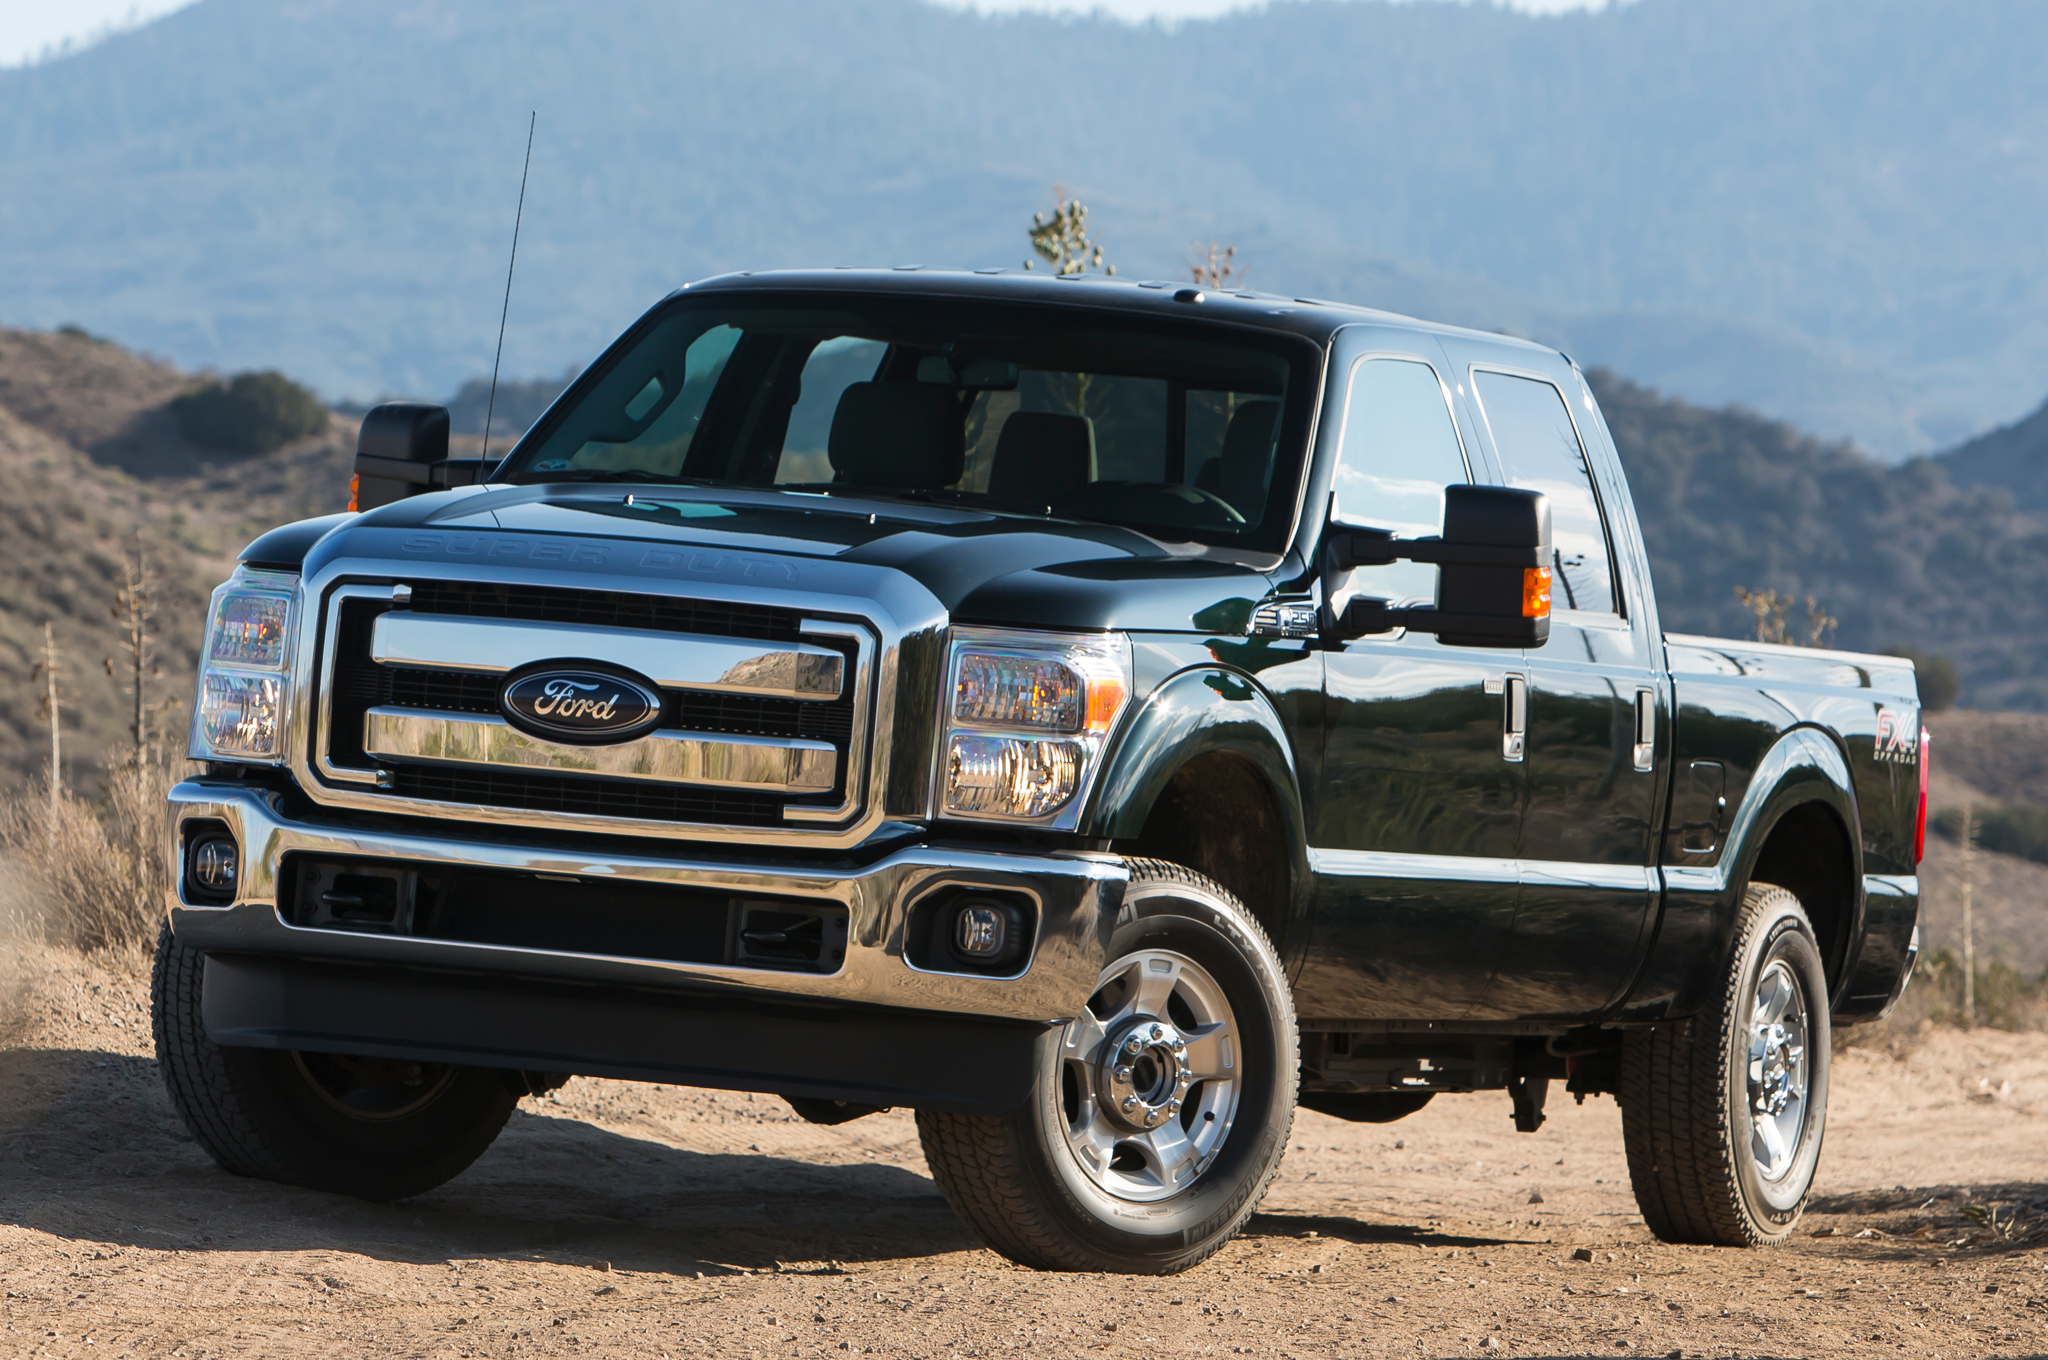 2015 ford f 250 super duty information and photos zombiedrive. Black Bedroom Furniture Sets. Home Design Ideas